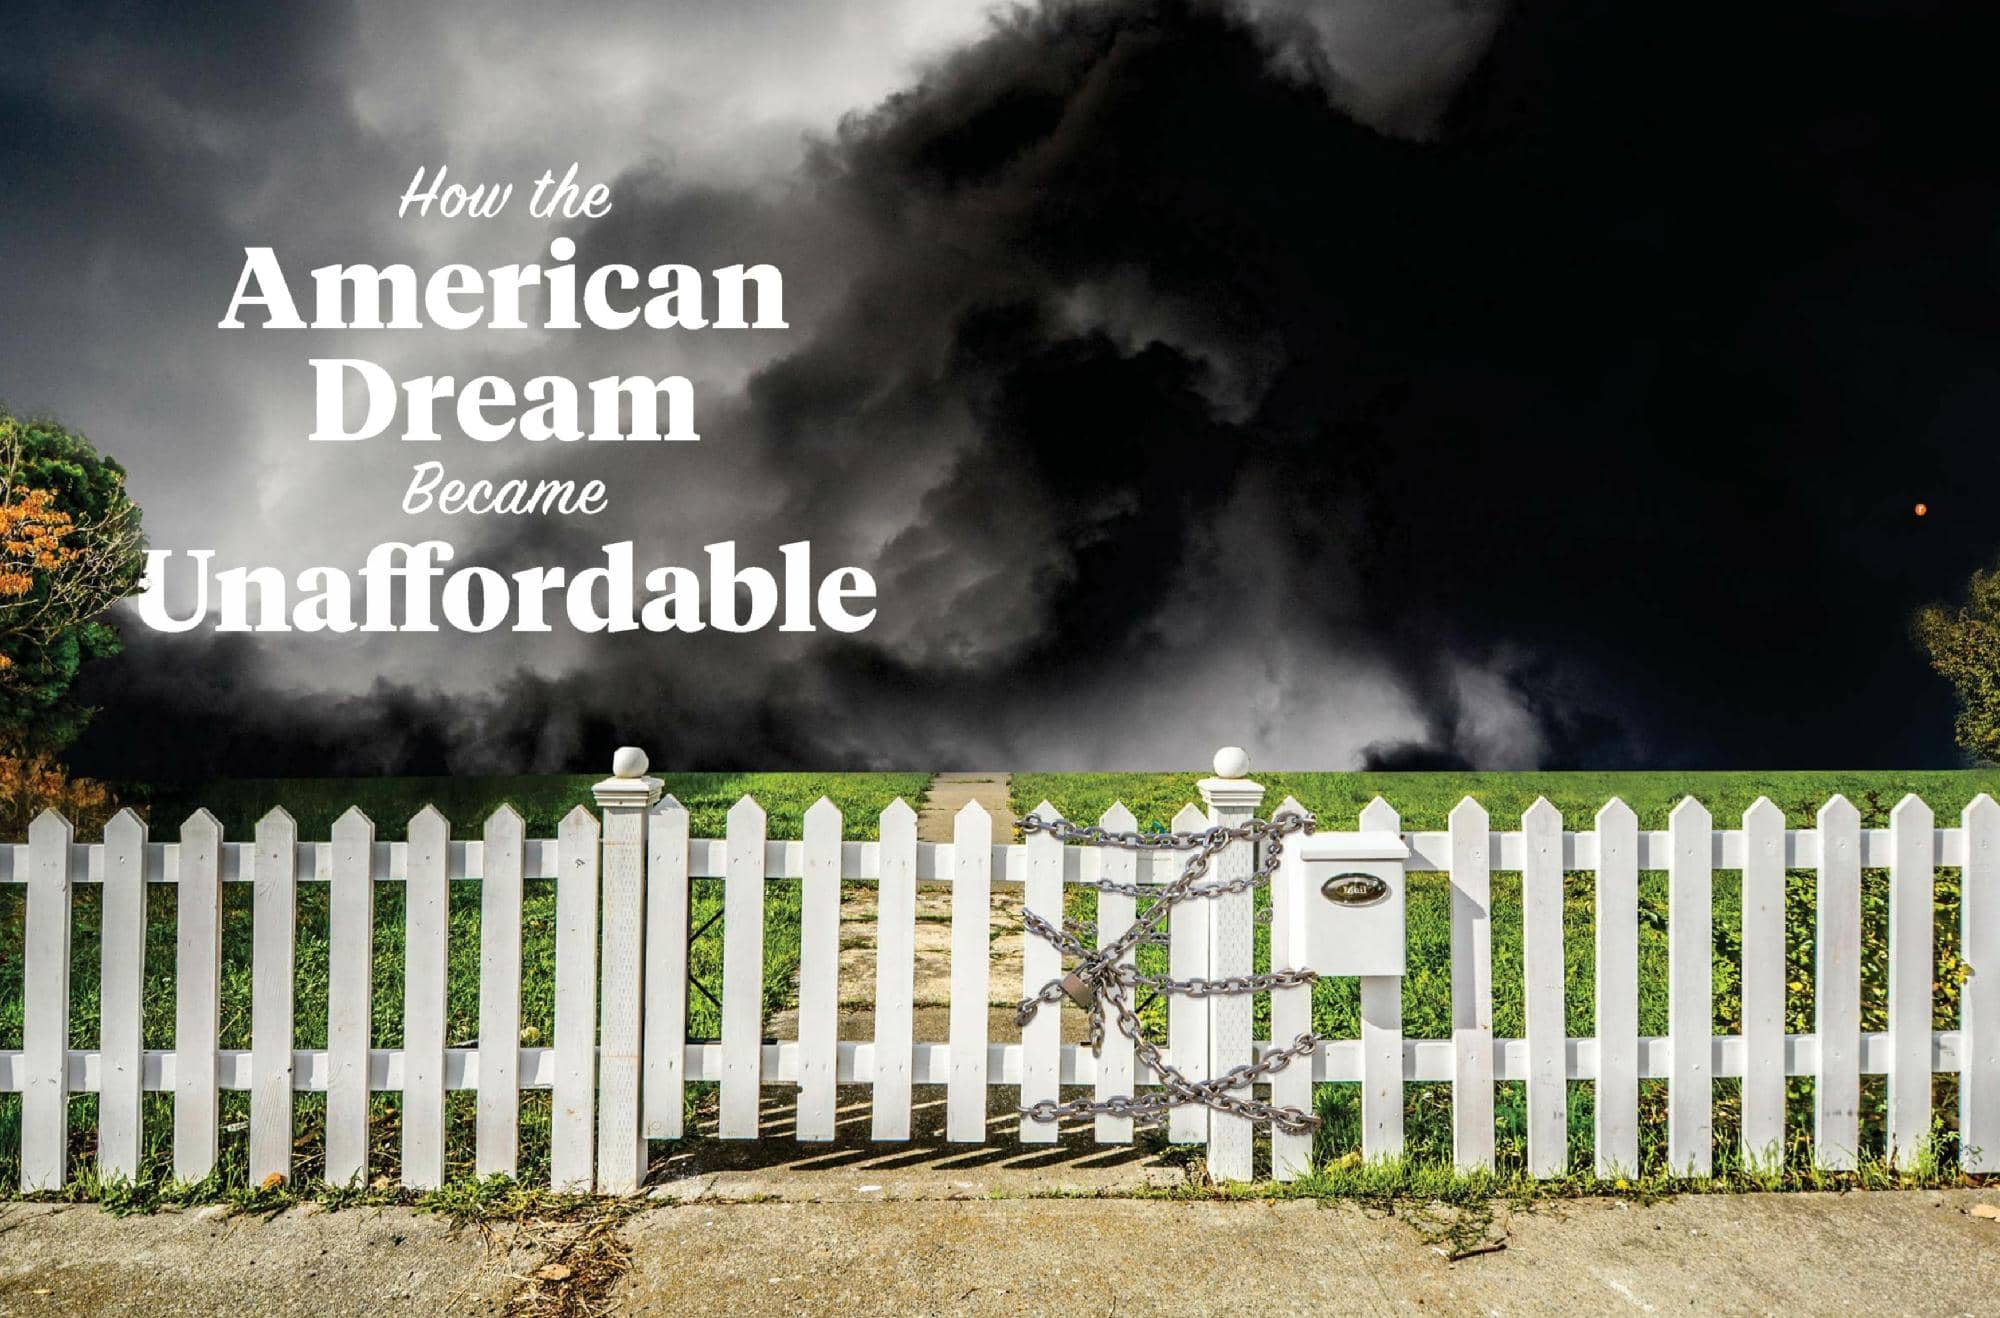 How the American Dream Became Unaffordable